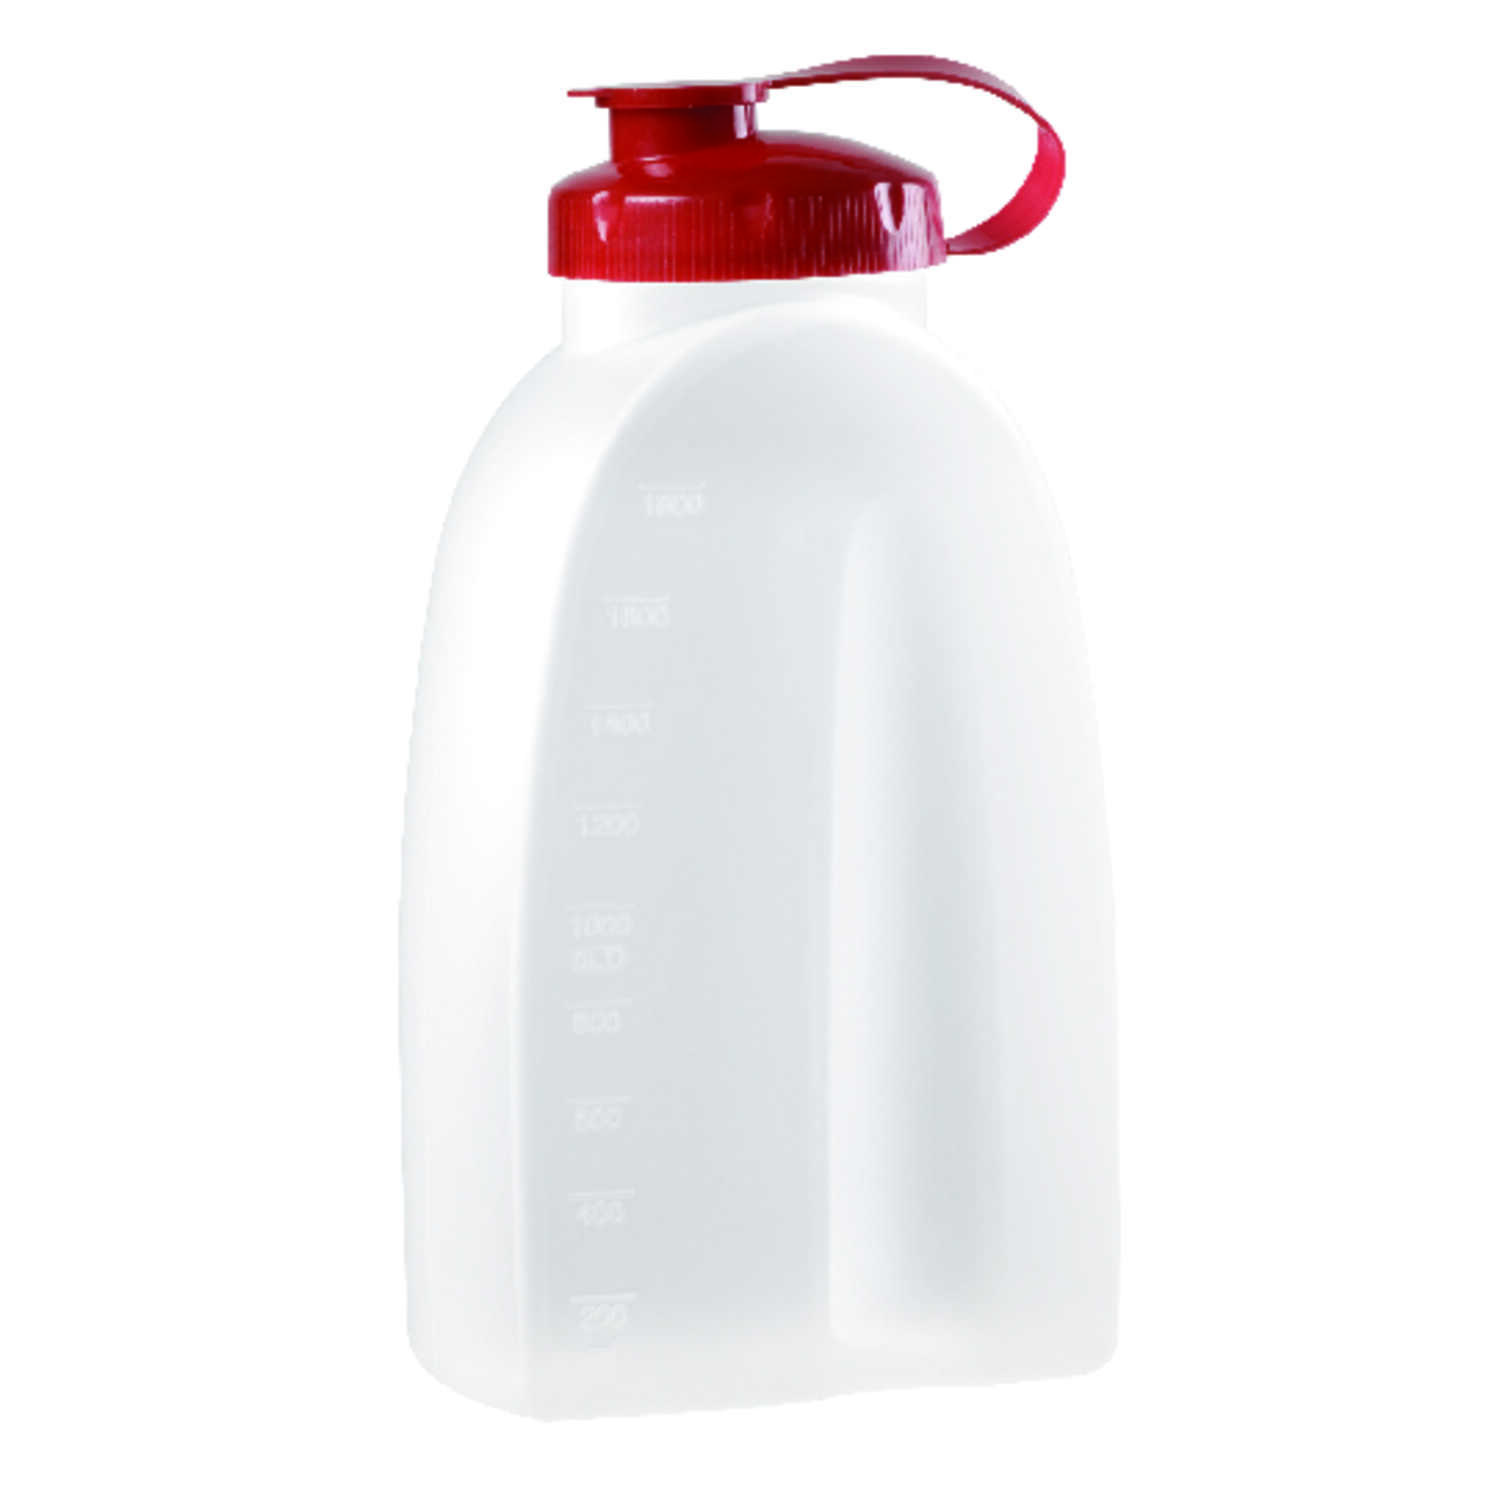 Rubbermaid  1 qt. Mixing Bottle